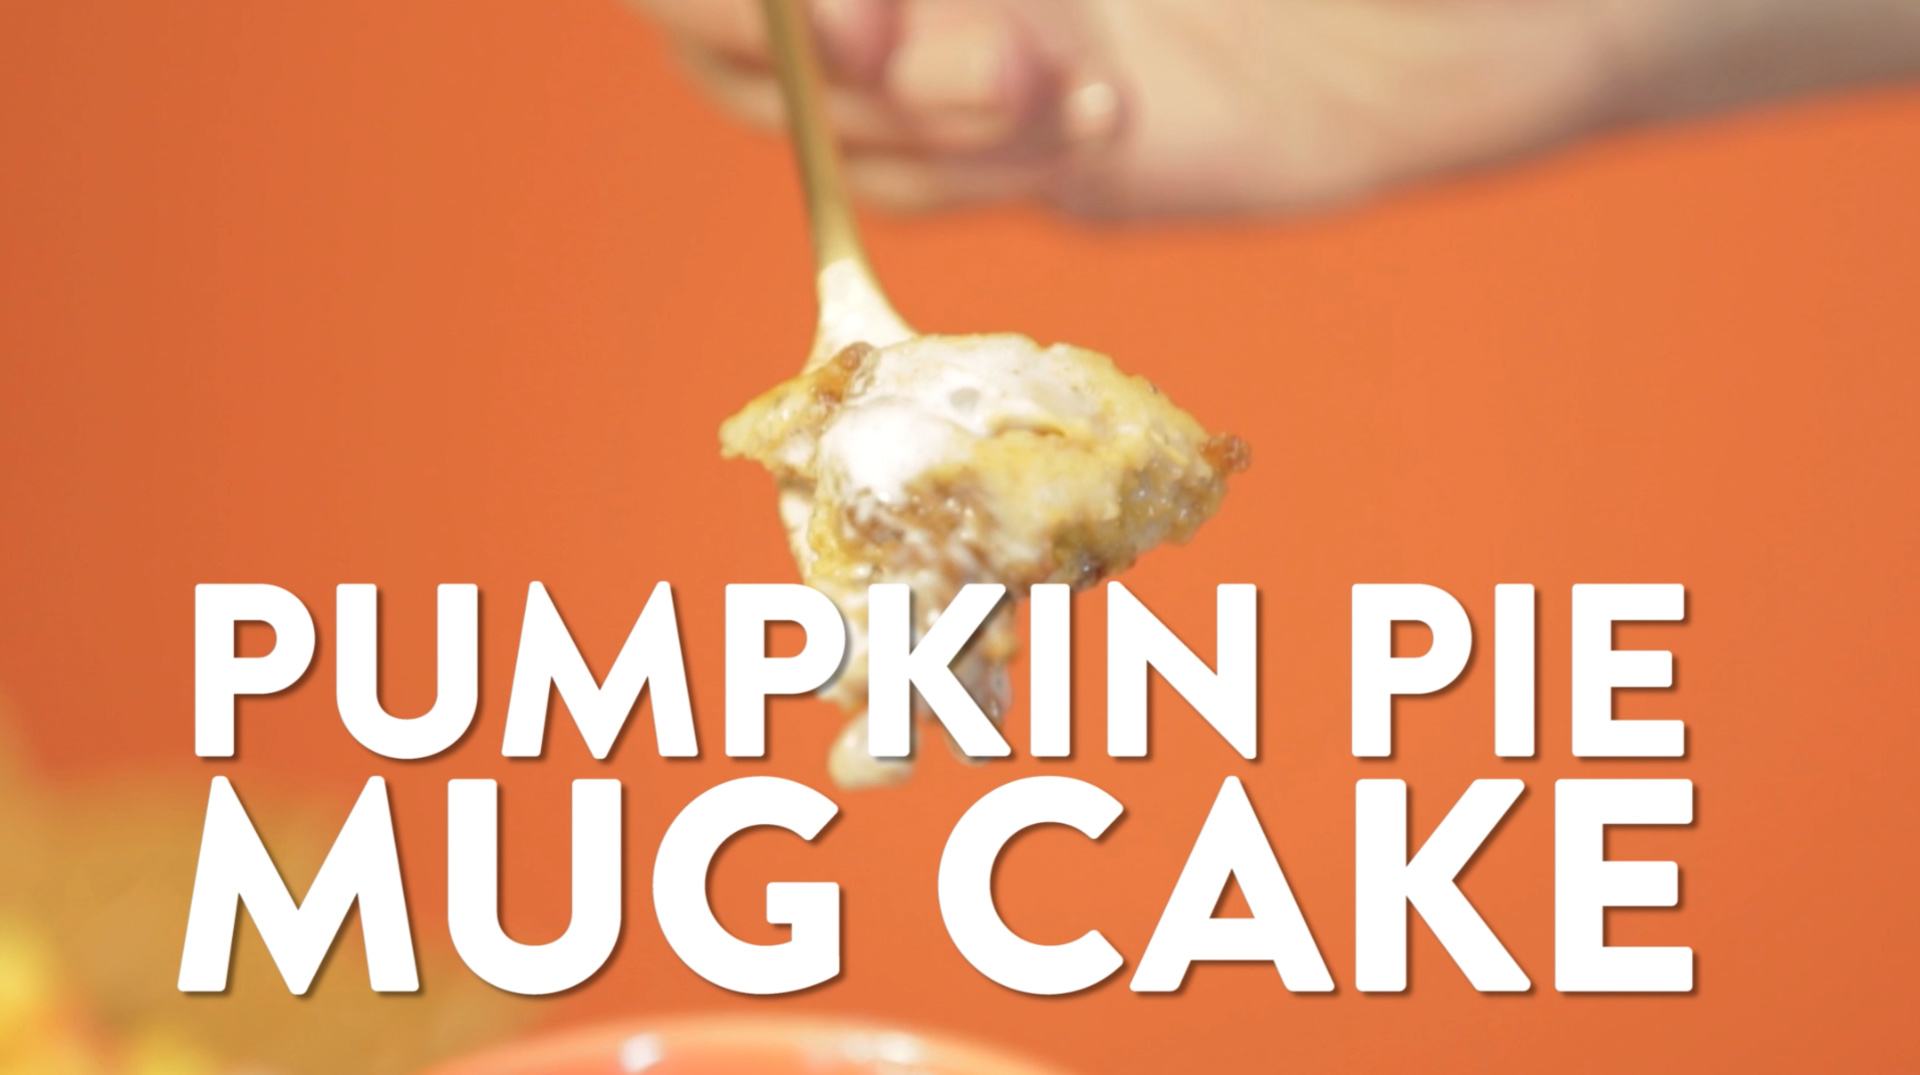 Try this AMAZING Pumpkin Pie Mug Cake